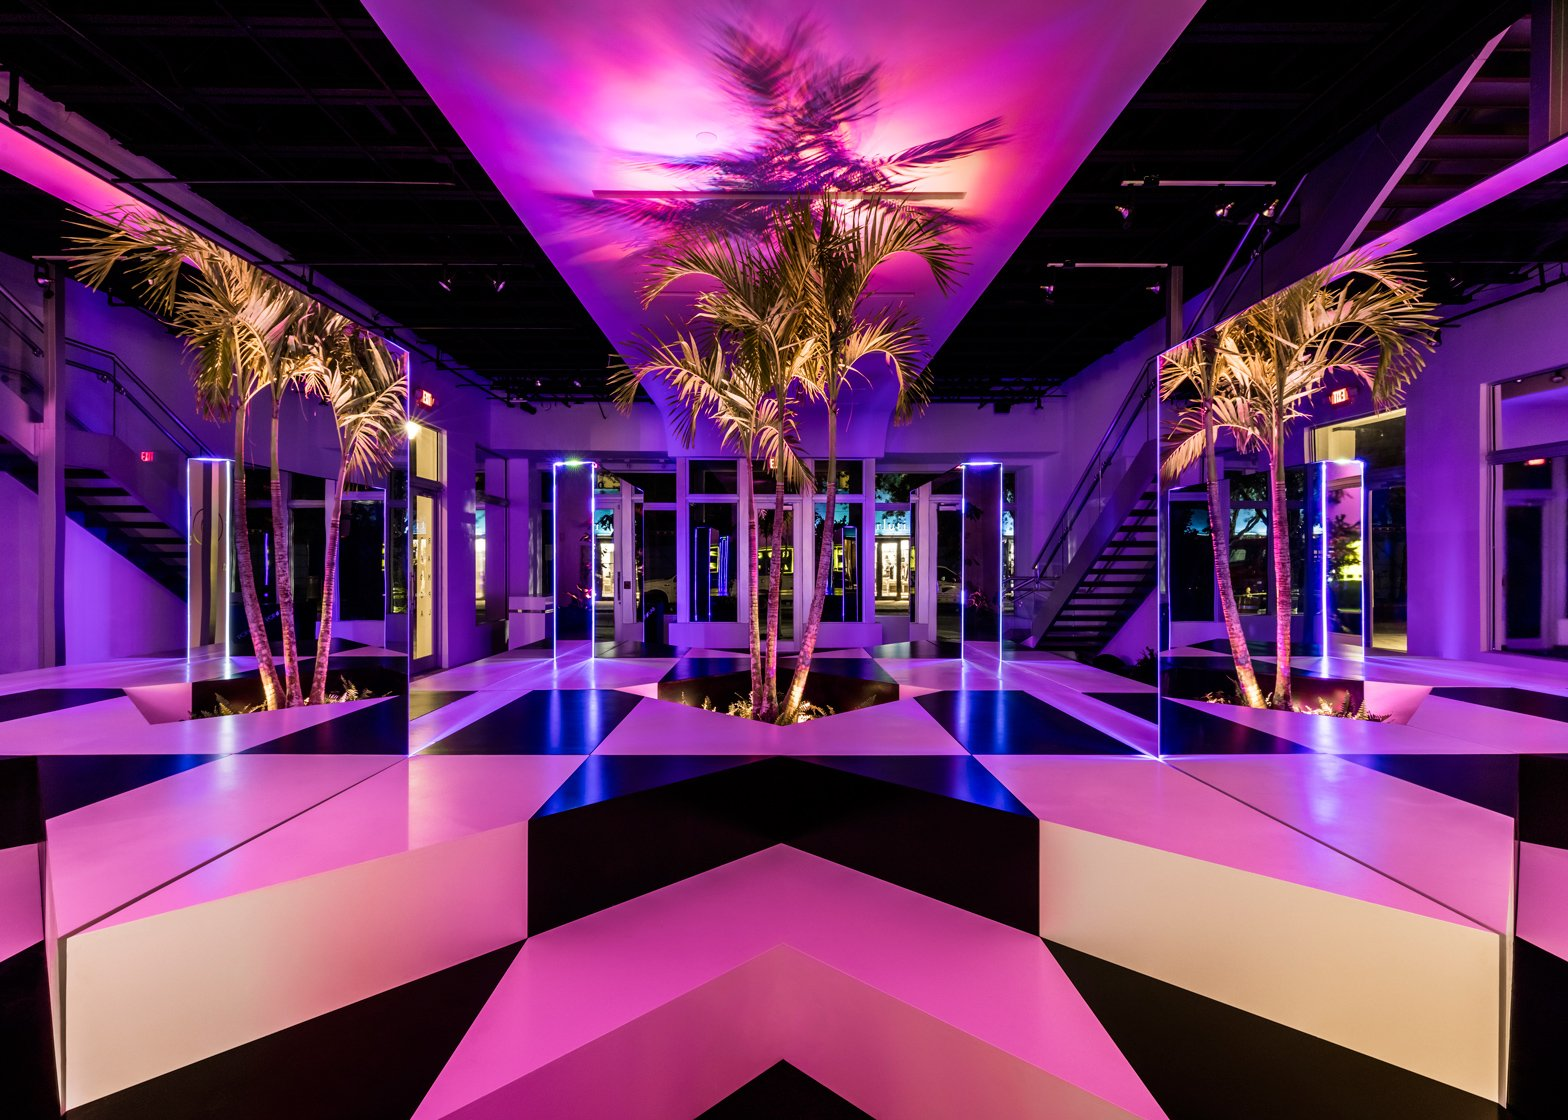 8 of 8 neon jungle installation by rafael de cardenas in miami design district